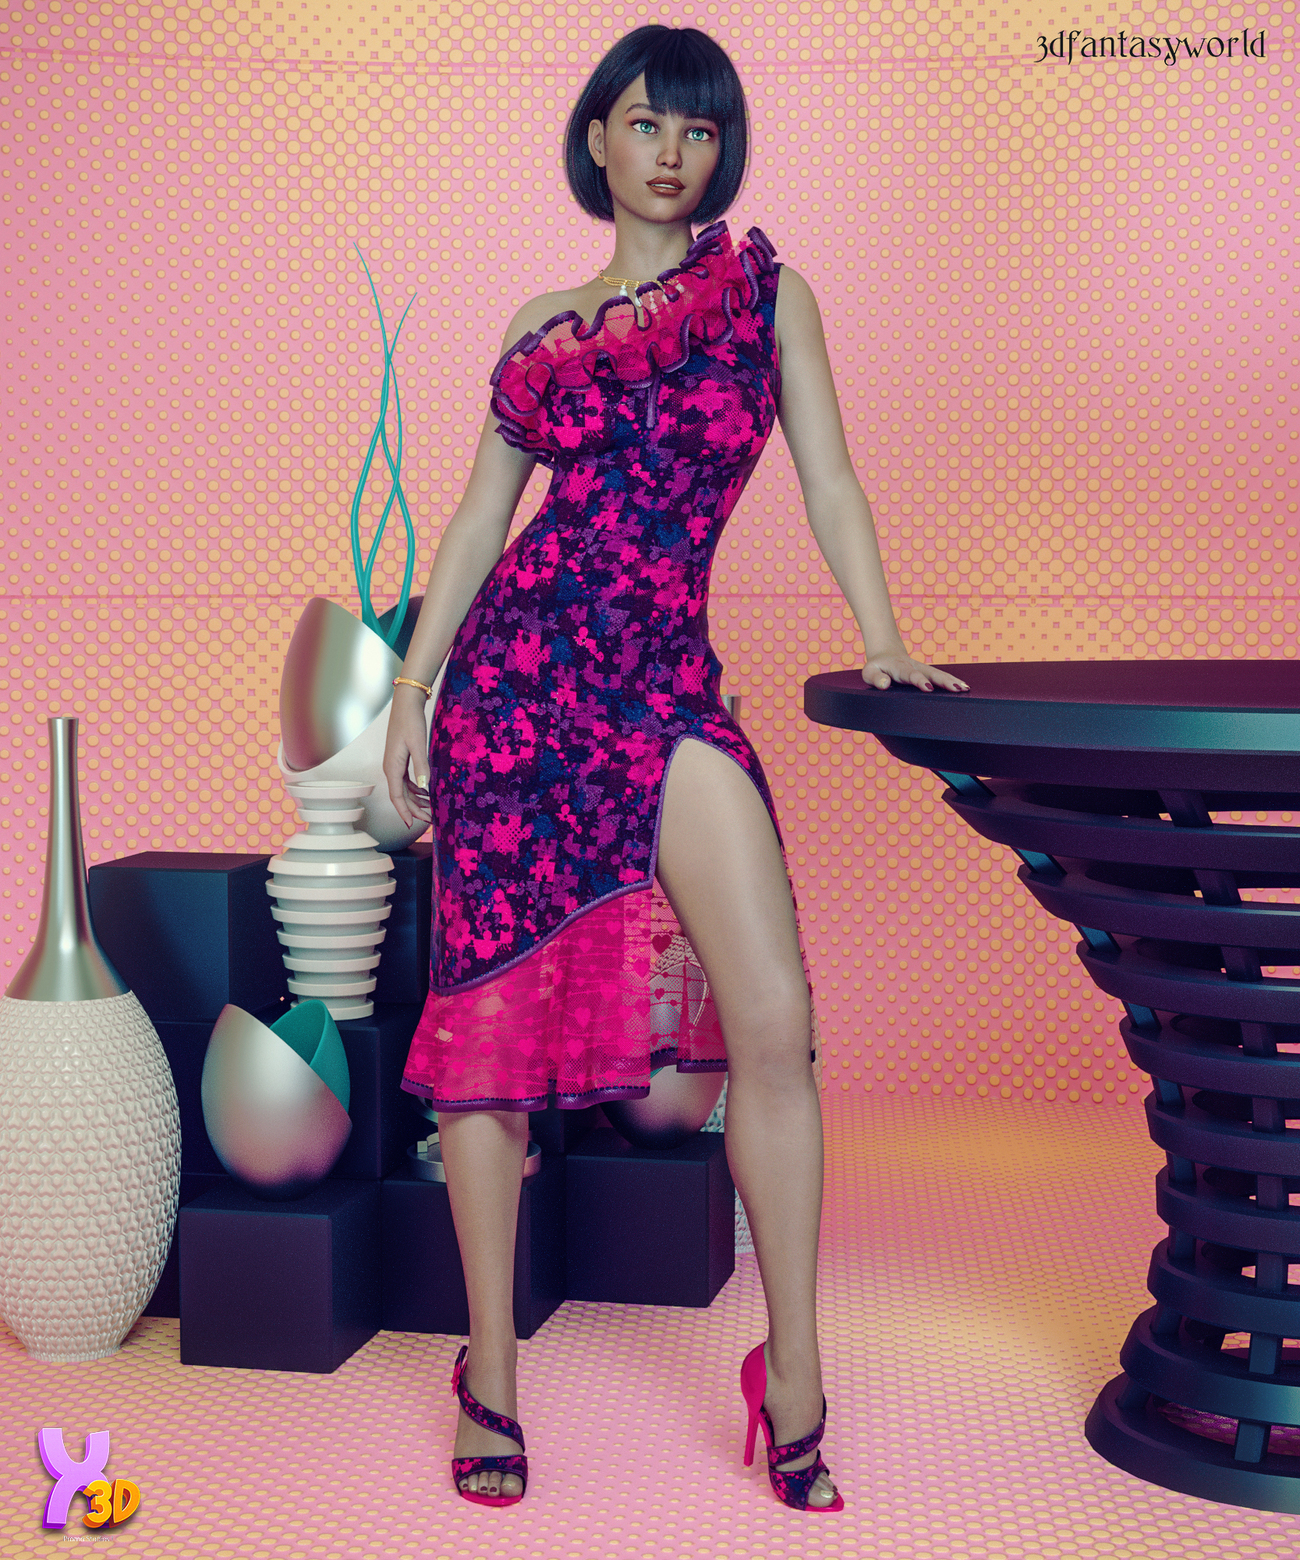 Charm Evening Cocktail Dress Outfit & EX by fantasy3dworld